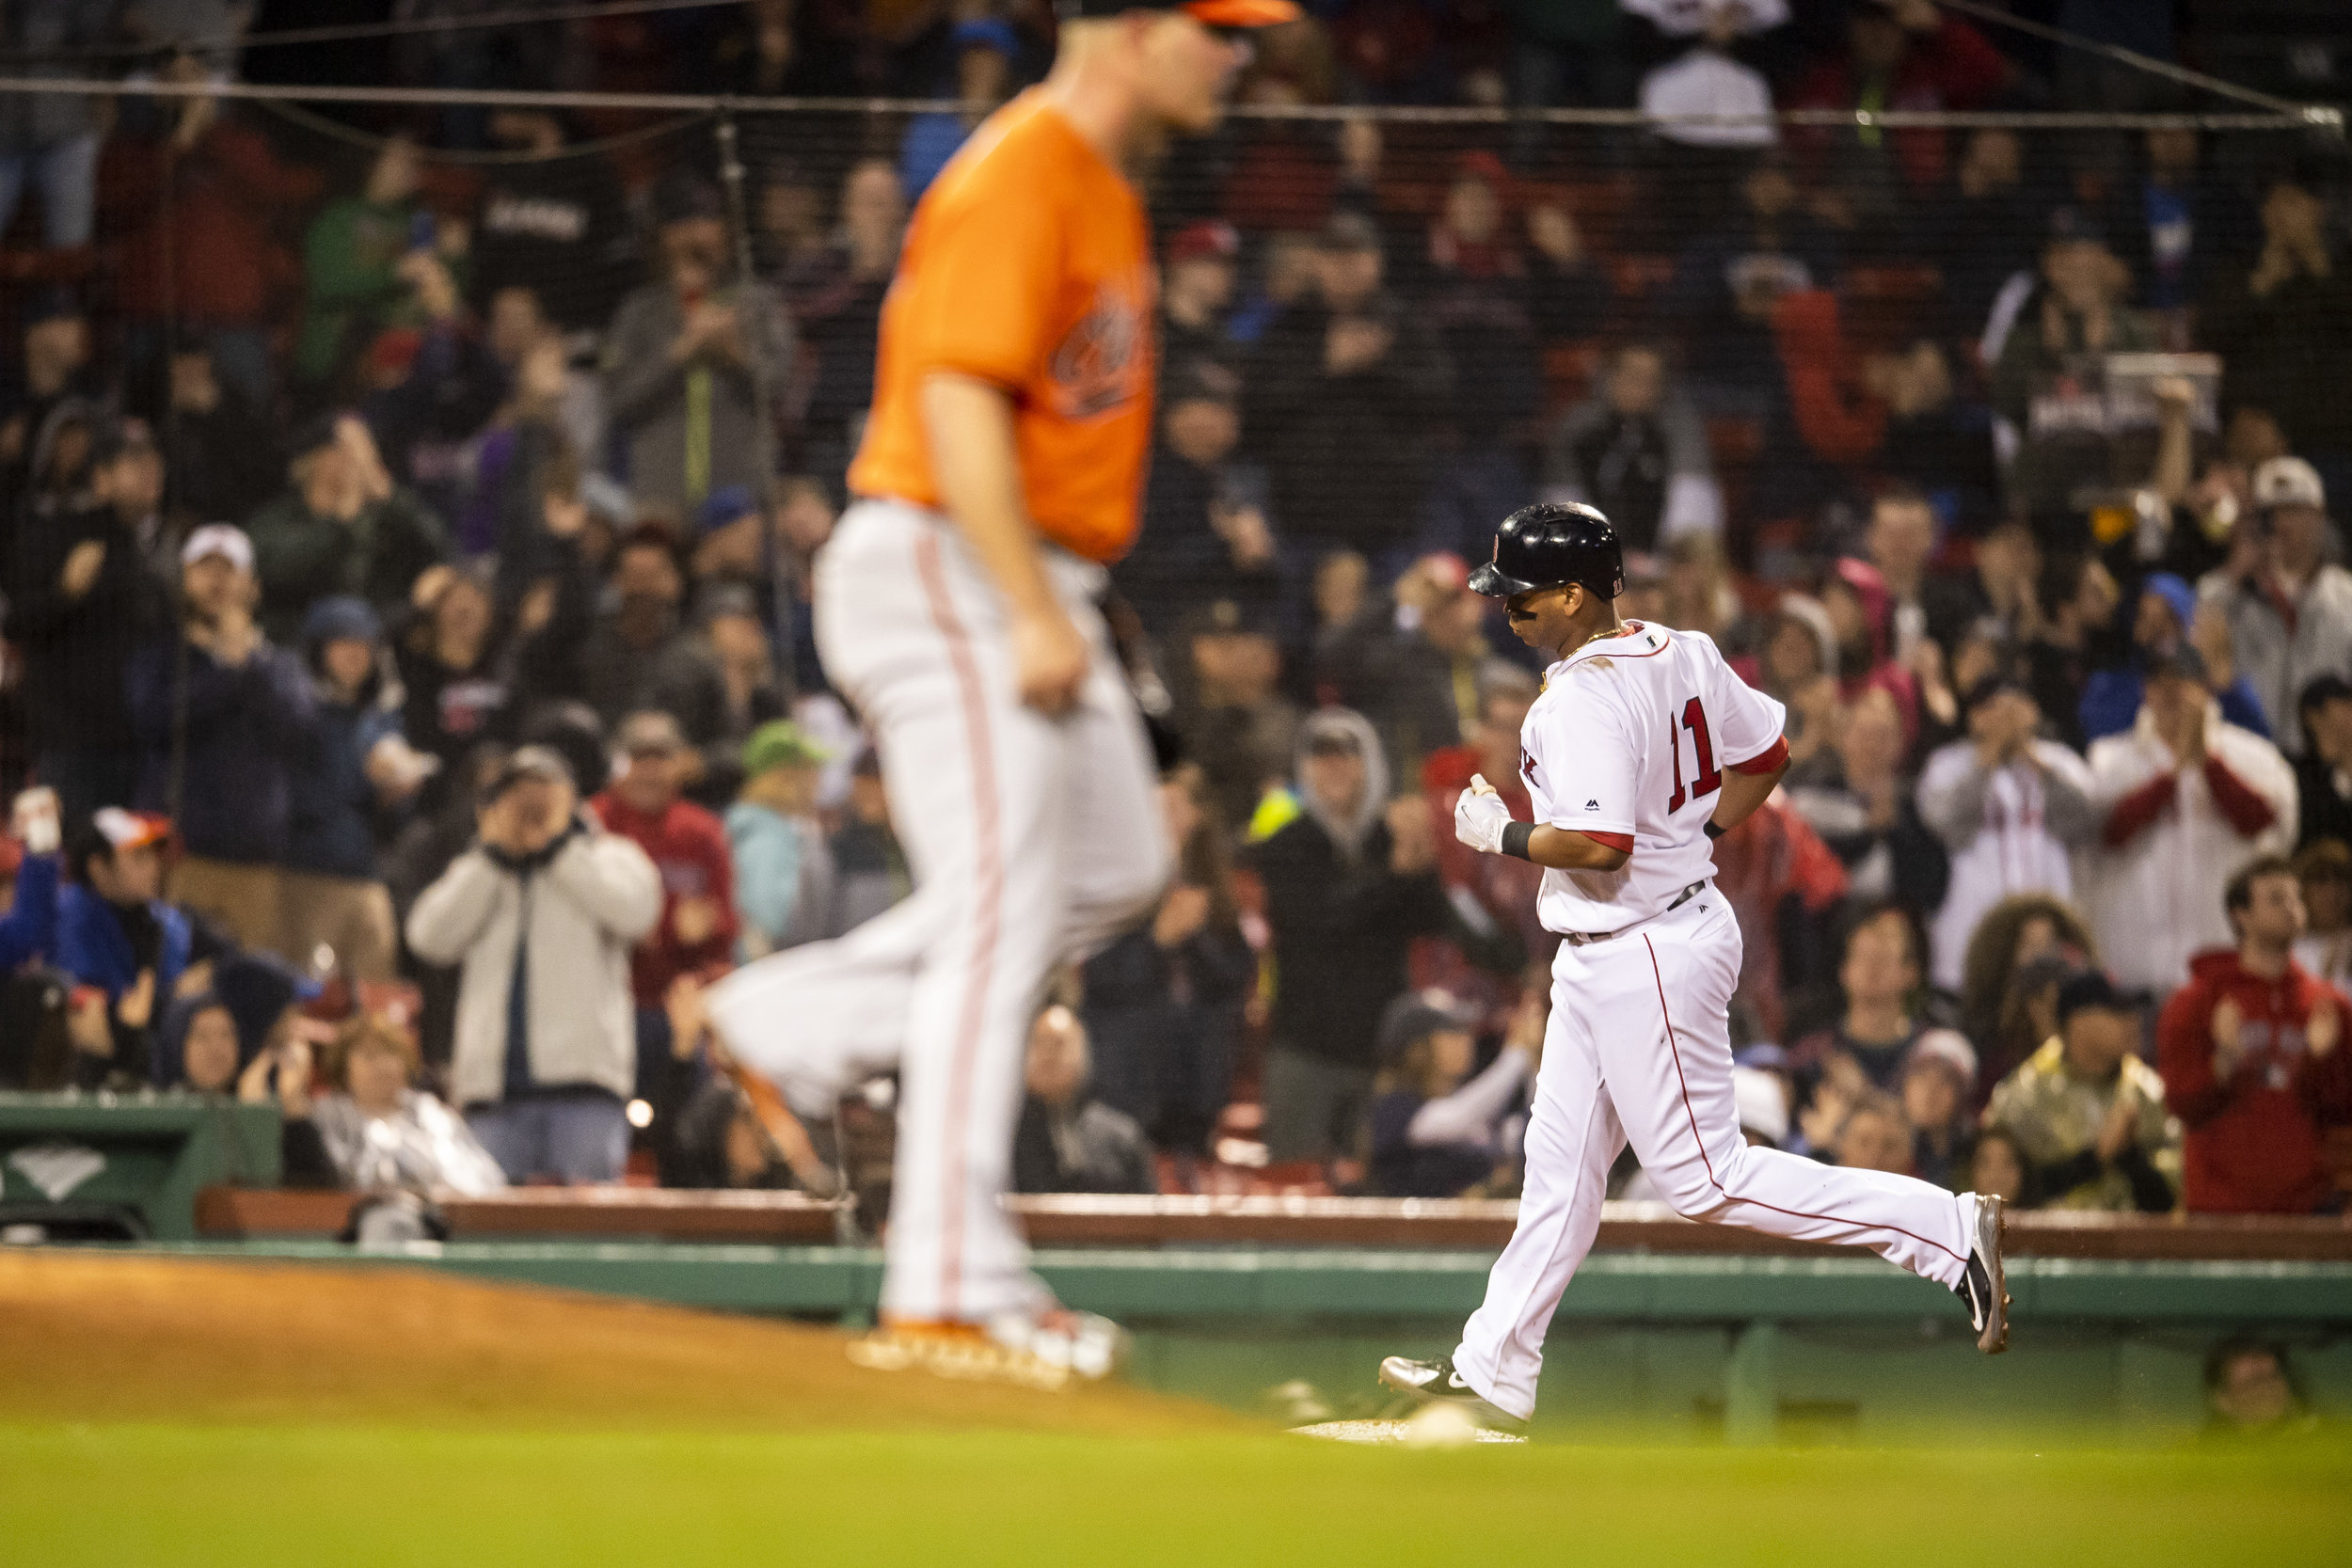 May 19, 2018, Boston, MA: Boston Red Sox third basemen Rafael Devers trots around third base after hitting a home run as the Boston Red Sox face the Baltimore Orioles at Fenway Park in Boston, Massachusetts on Saturday, May 19, 2018. (Photo by Matthew Thomas/Boston Red Sox)